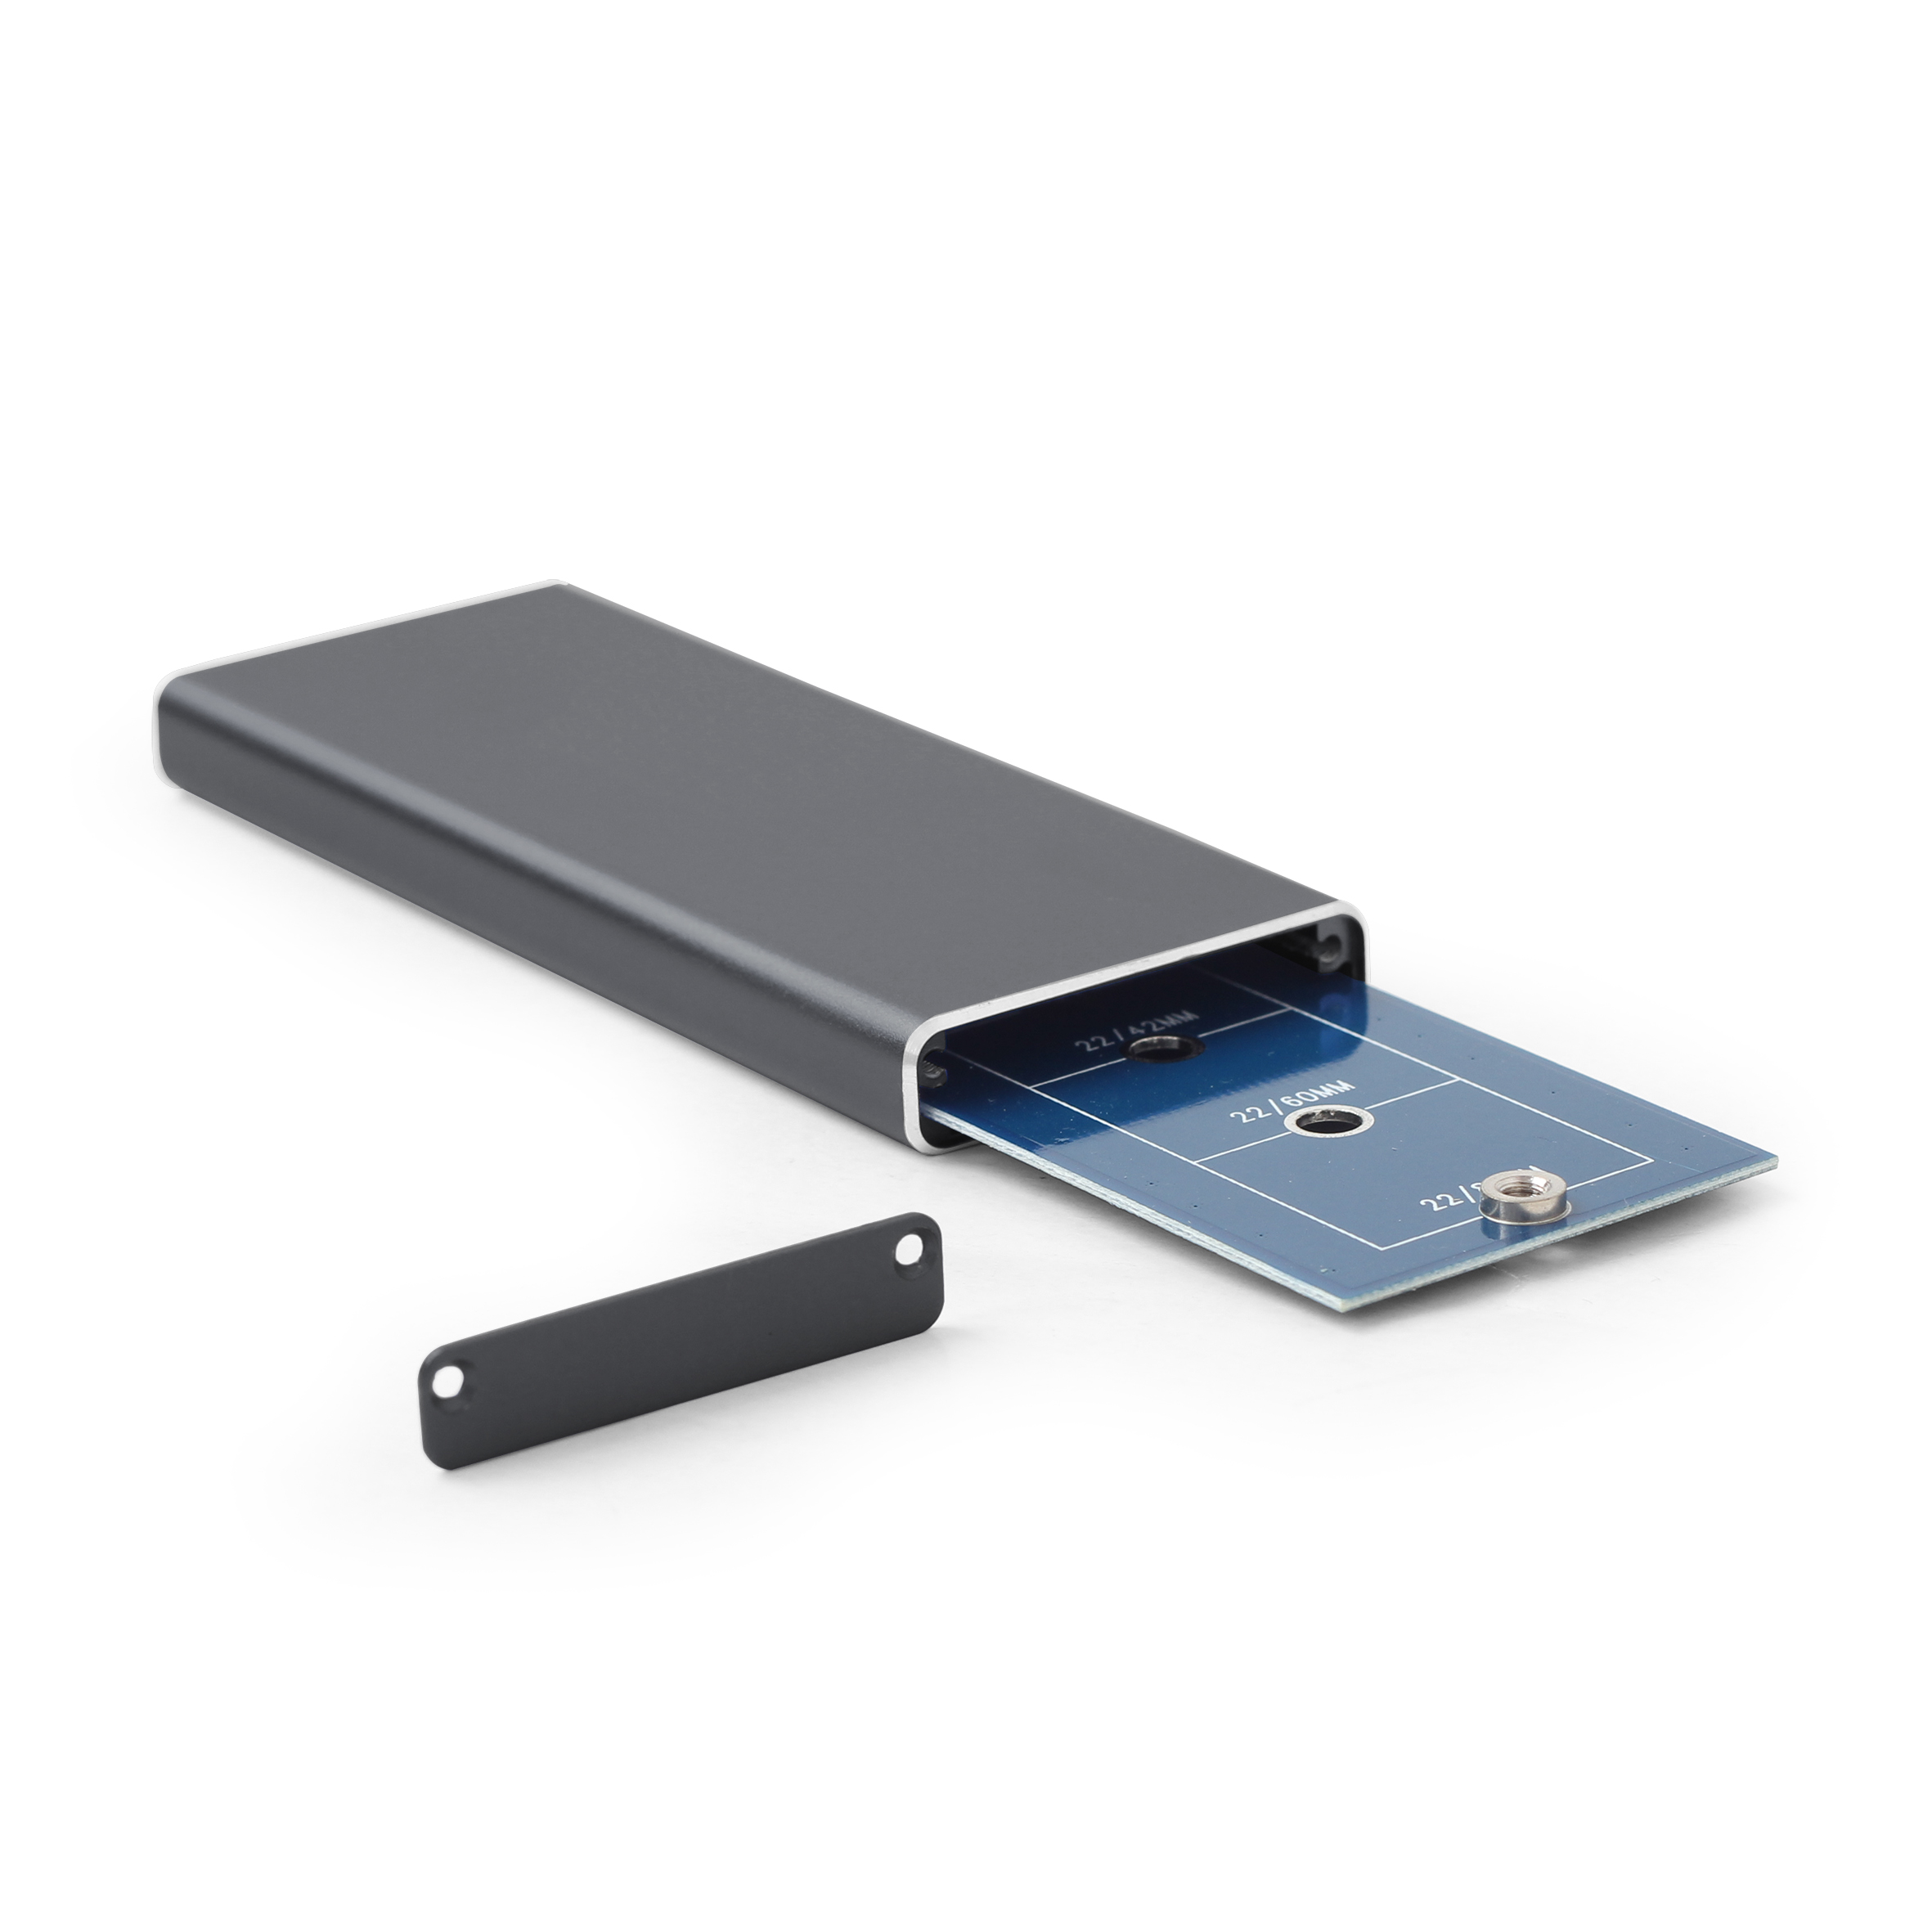 Gembird externe behuizing voor M.2 drives, USB 3.0, zwart, Supports M.2 of 22 mm wide drives (2230, 2242, 2260, 2280), JMS578 of AMS225